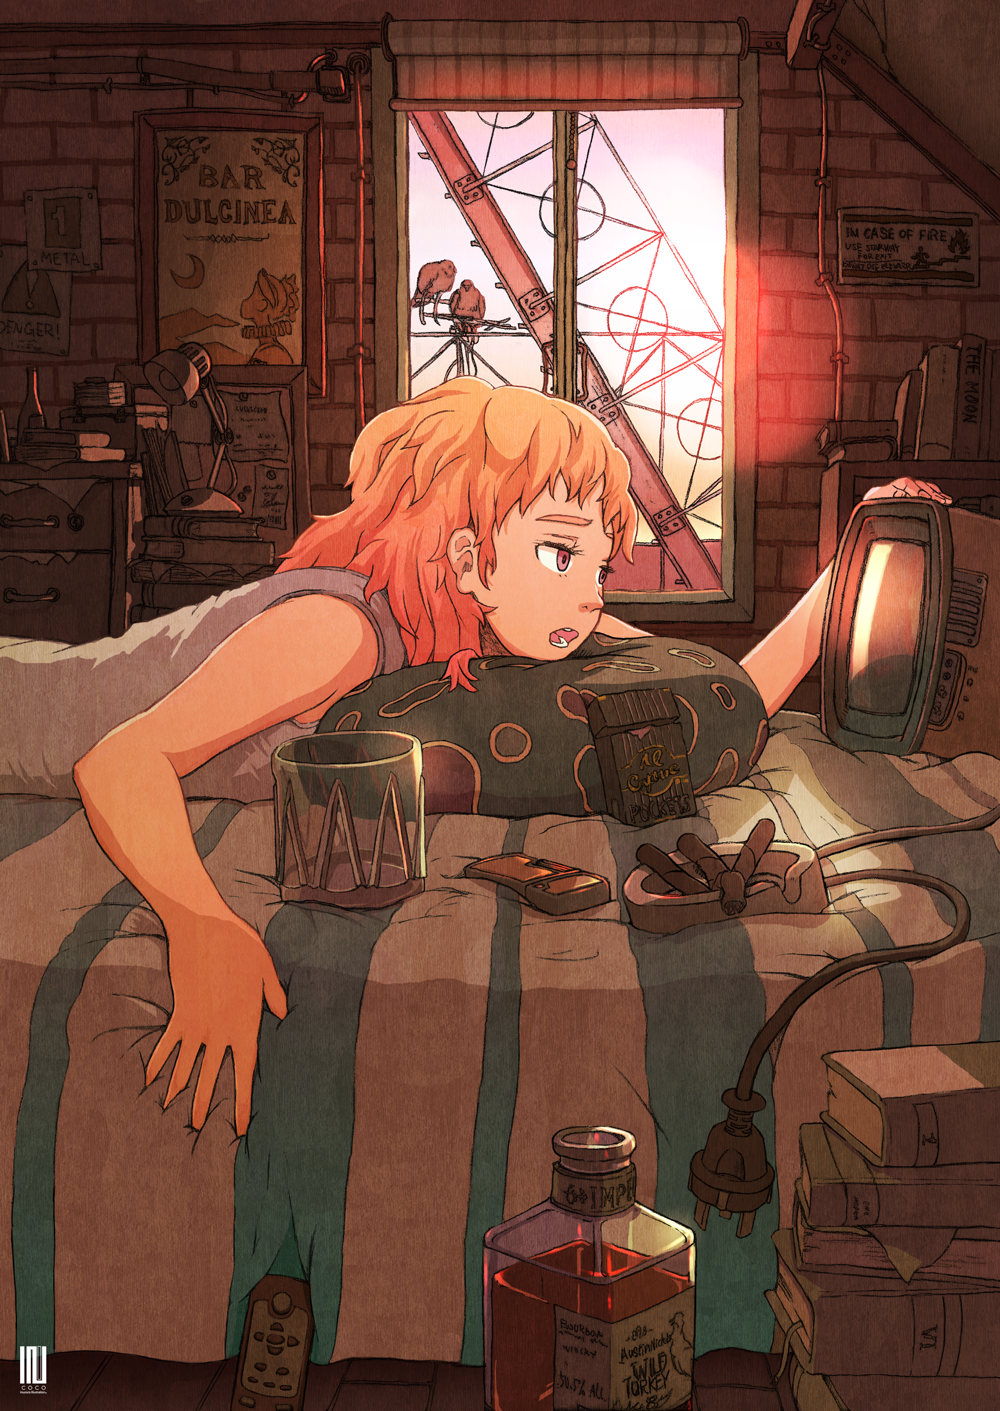 1girl ashtray bed book book_stack bottle cable cigarette_butt controller grey_shirt highres indoors inukoko lamp lying medium_hair on_stomach open_mouth orange_hair original profile red_eyes remote_control shirt sleeveless sleeveless_shirt solo television window